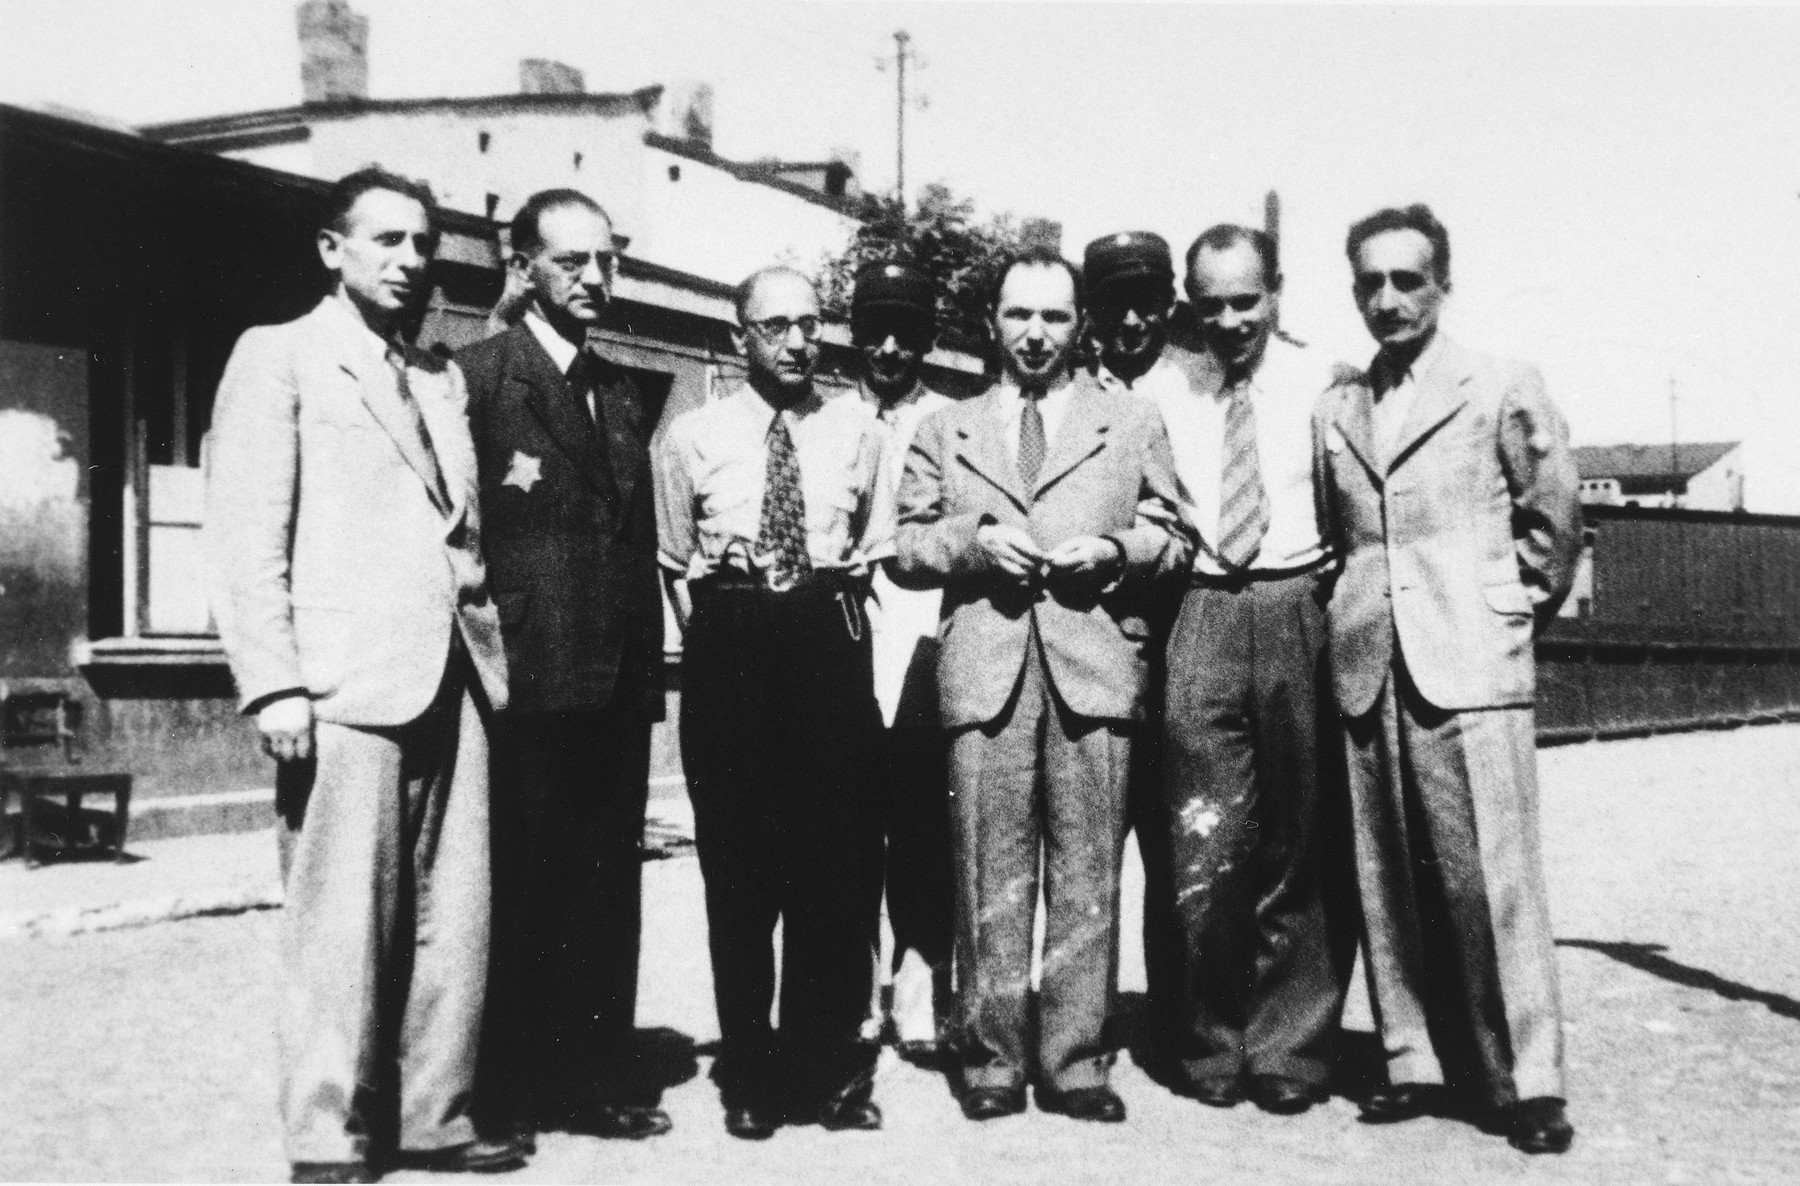 Group portrait of administrators and police in the Lodz ghetto.